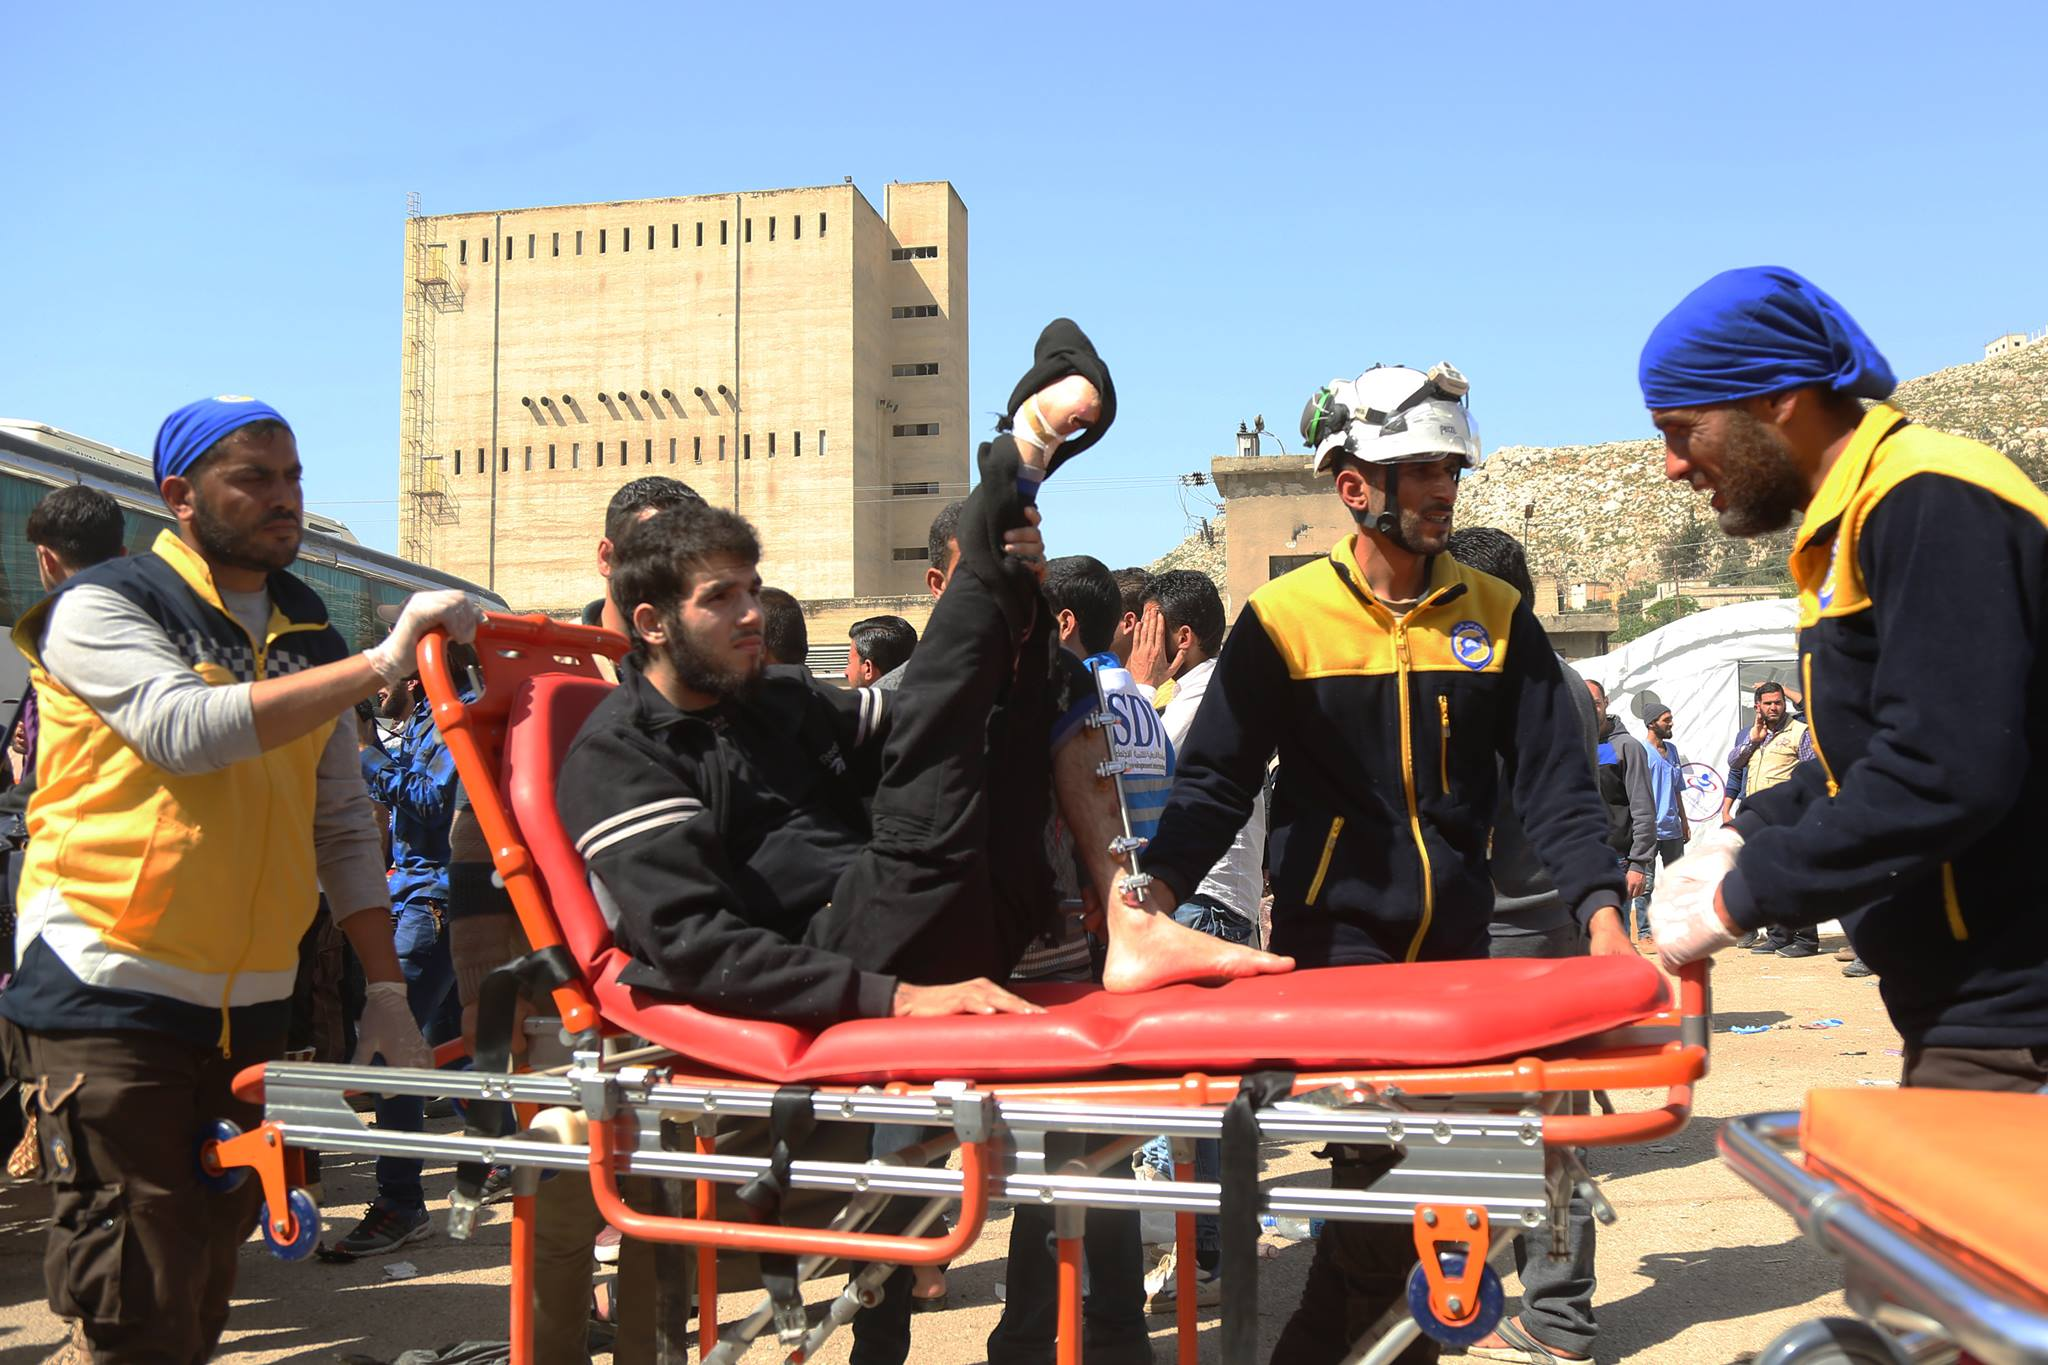 An injured deportee received by the White Helmets